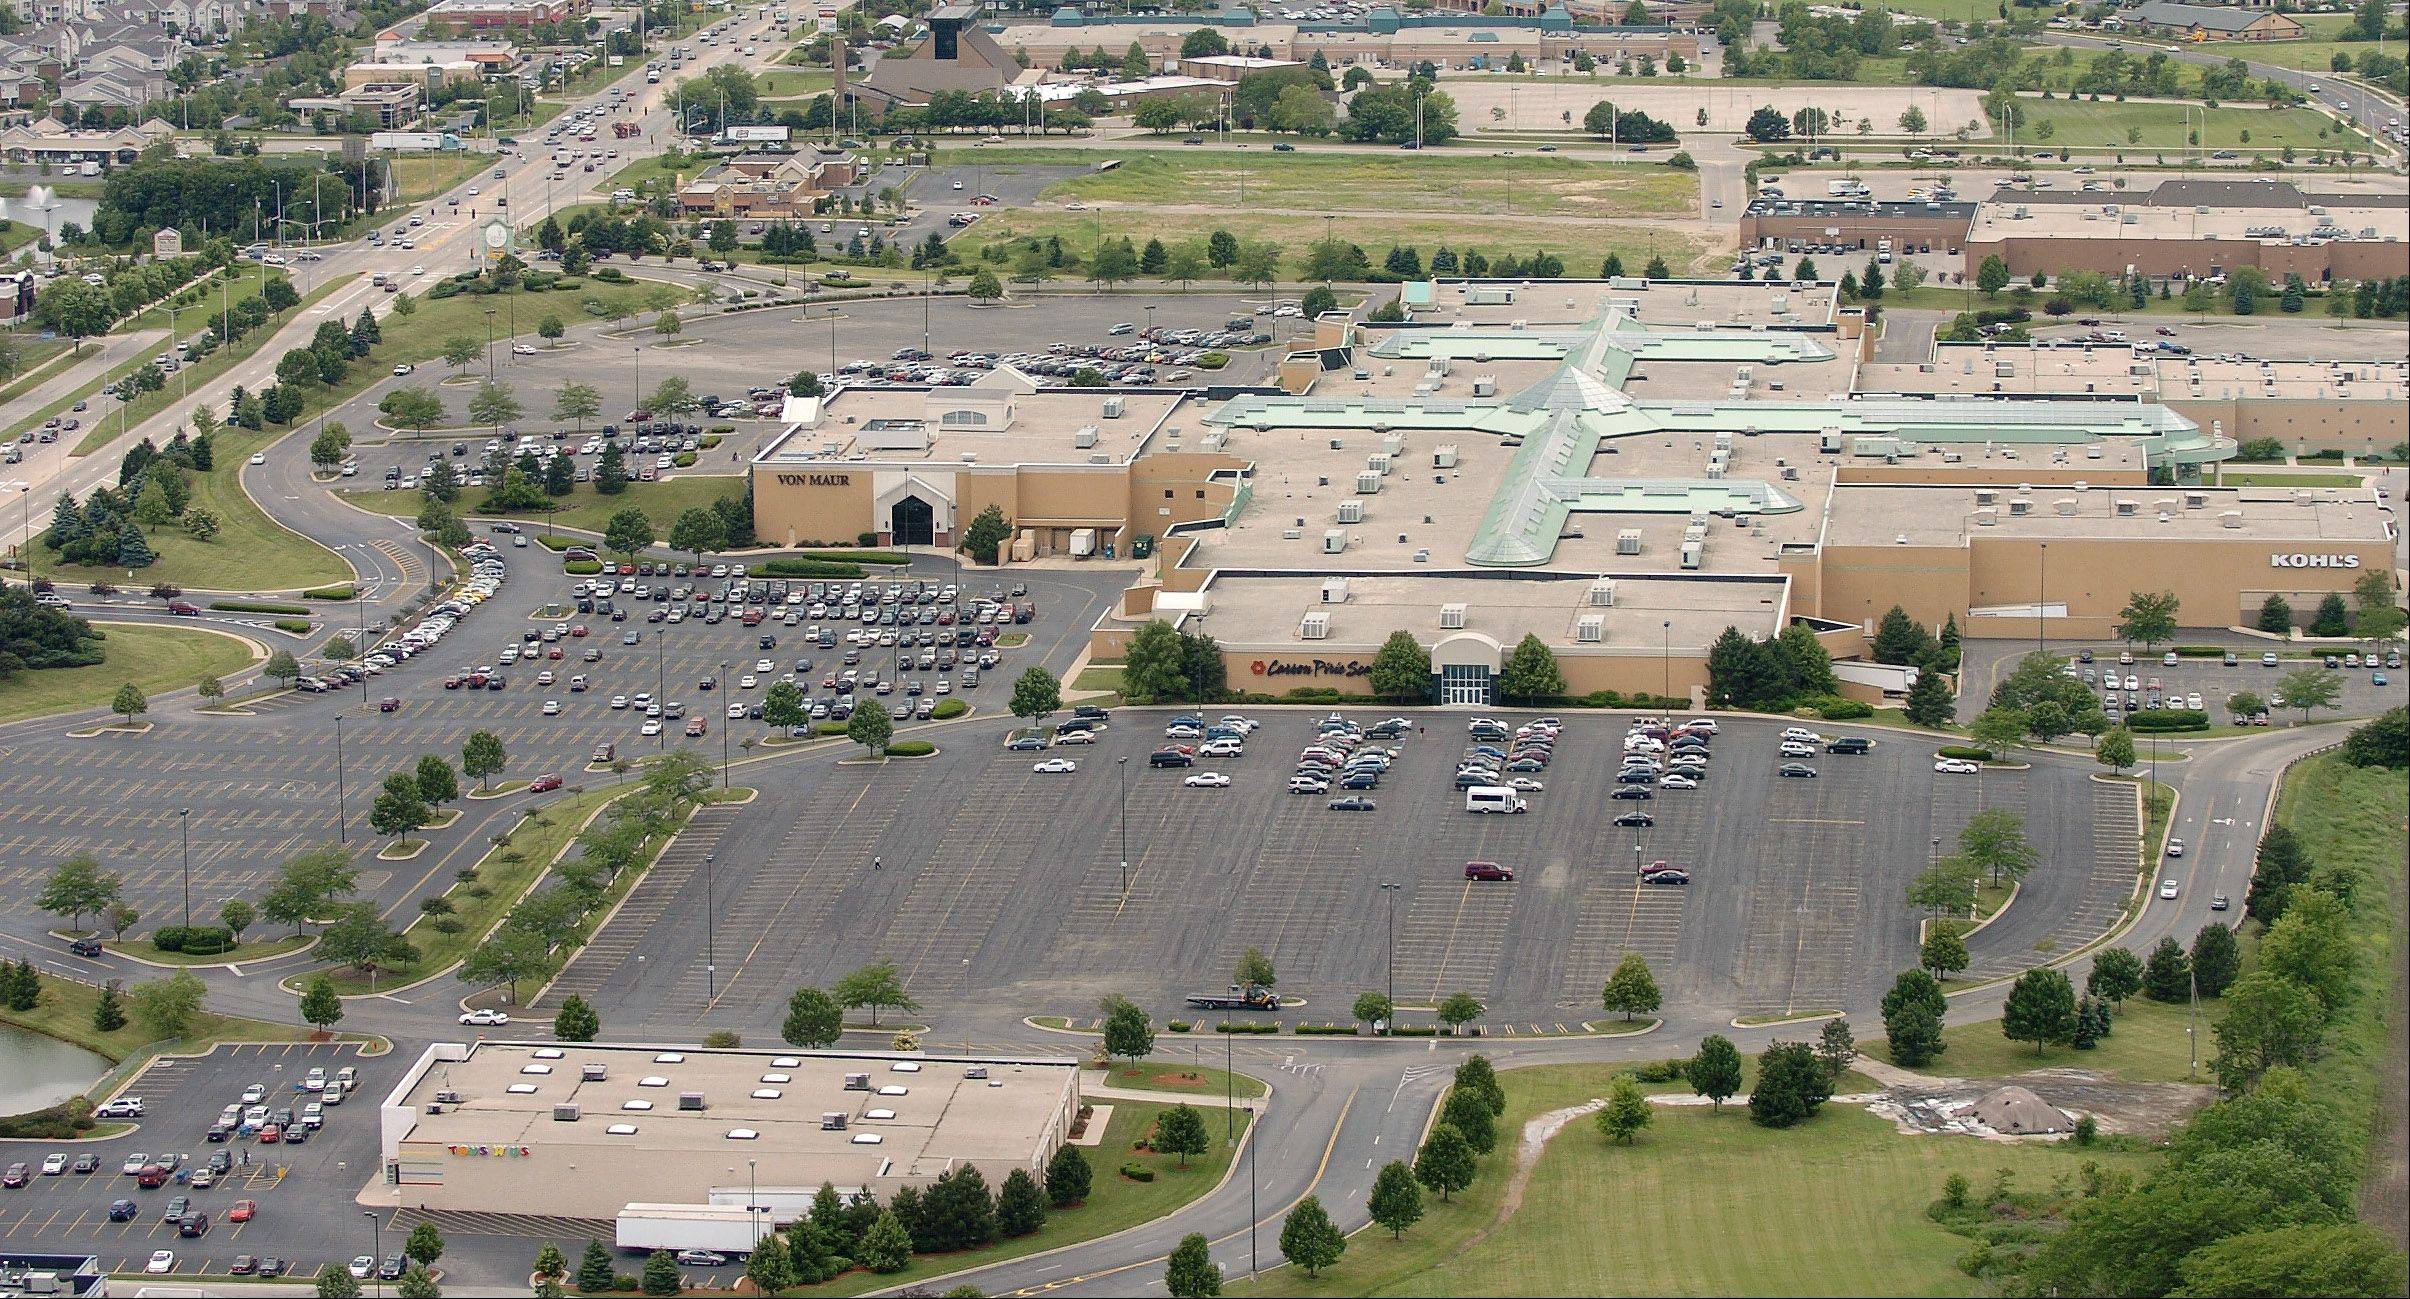 The Charlestowne Mall property has room to grow if a redesign occurs.